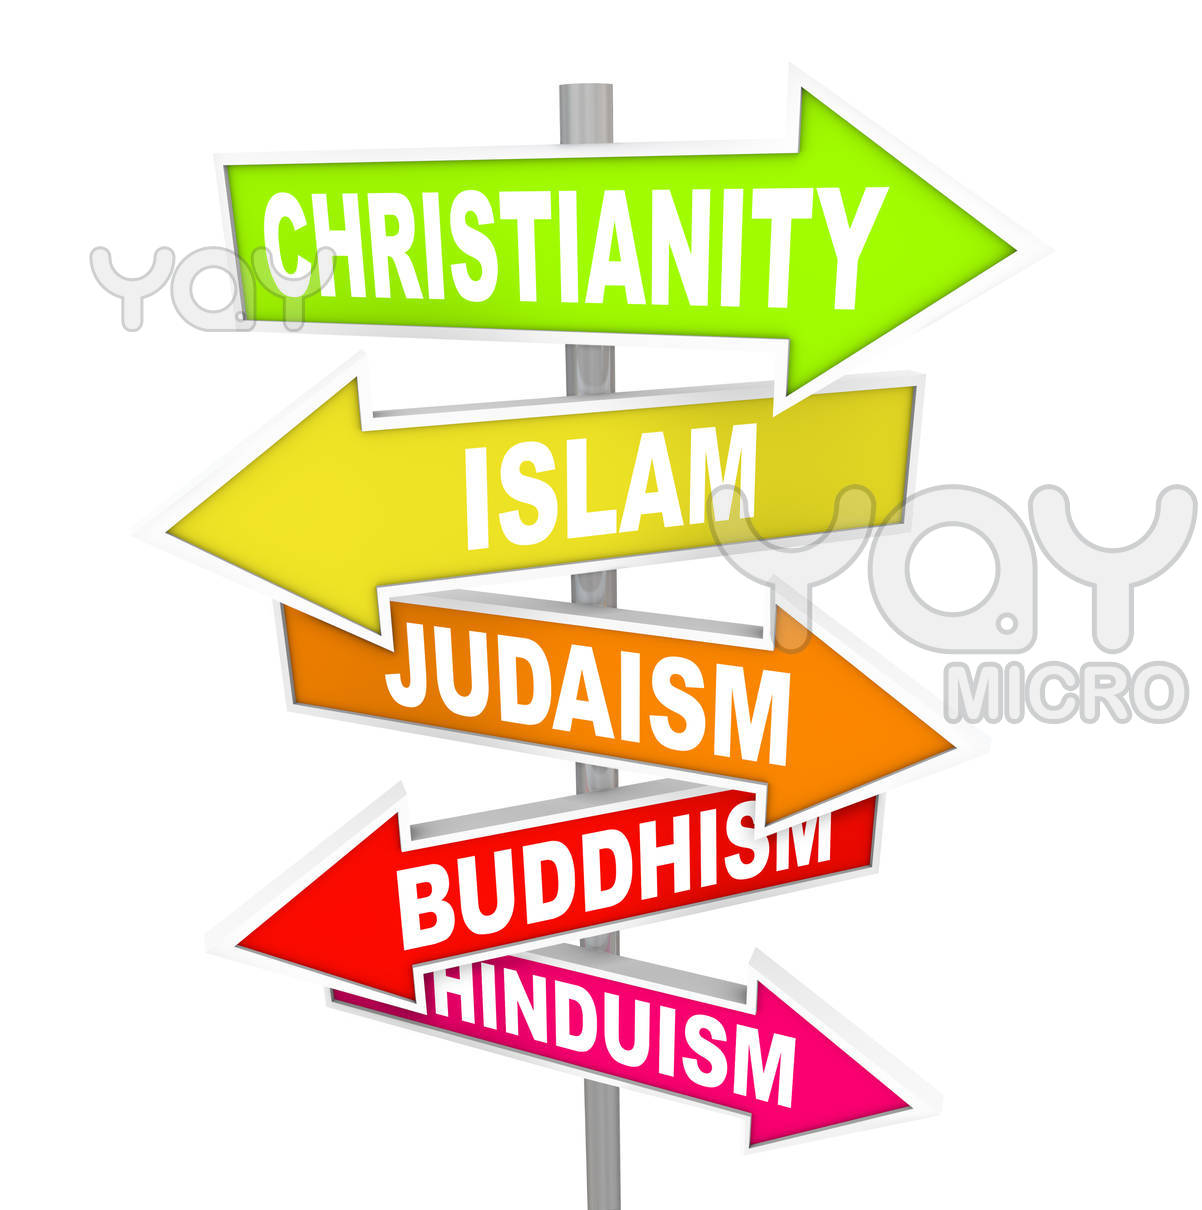 How religion and nationalism affects our way of life